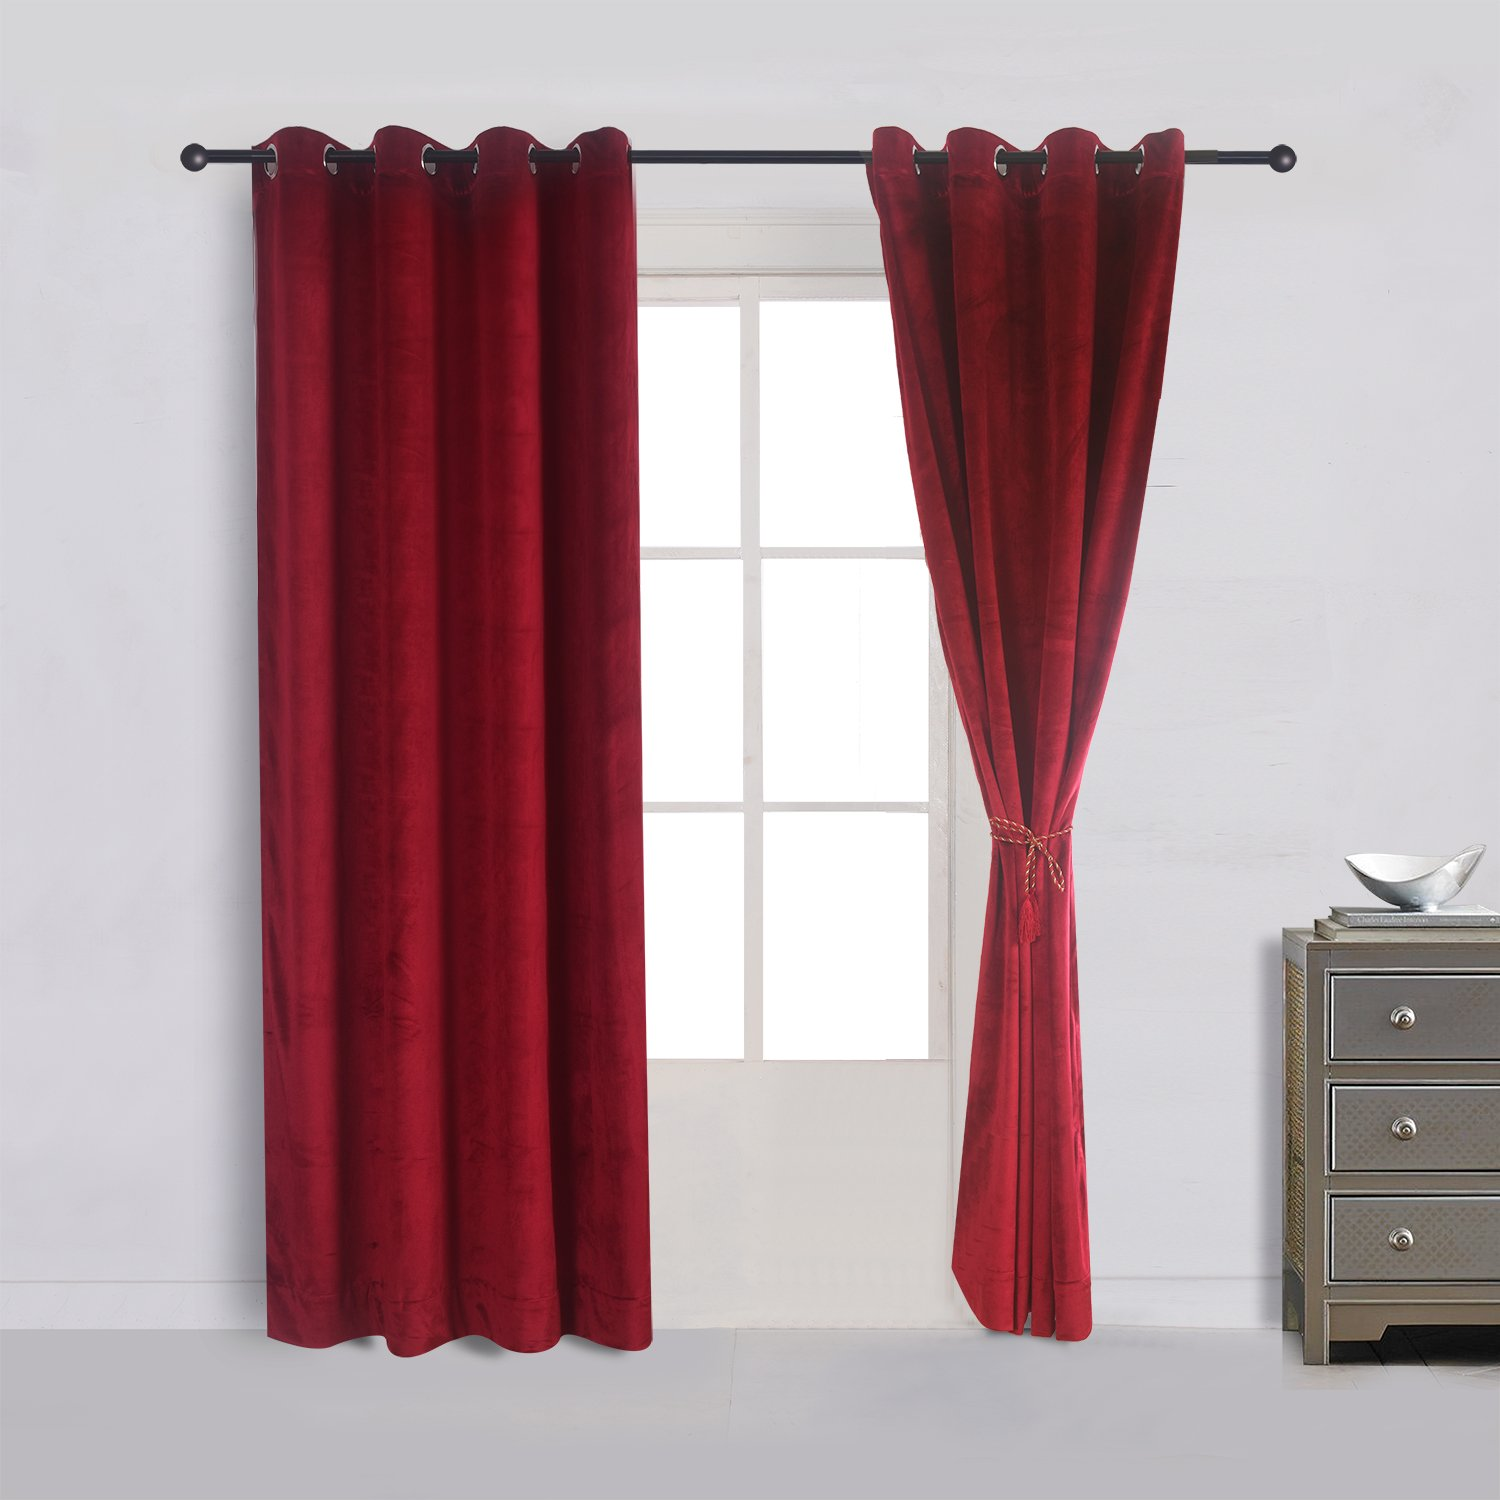 Cherry Home Set of 2 Classic Blackout Velvet Curtains Panels Home Theater Grommet Drapes Eyelet 52Wx96L-inch Red(2 panels)Theater| Bedroom| Living ...